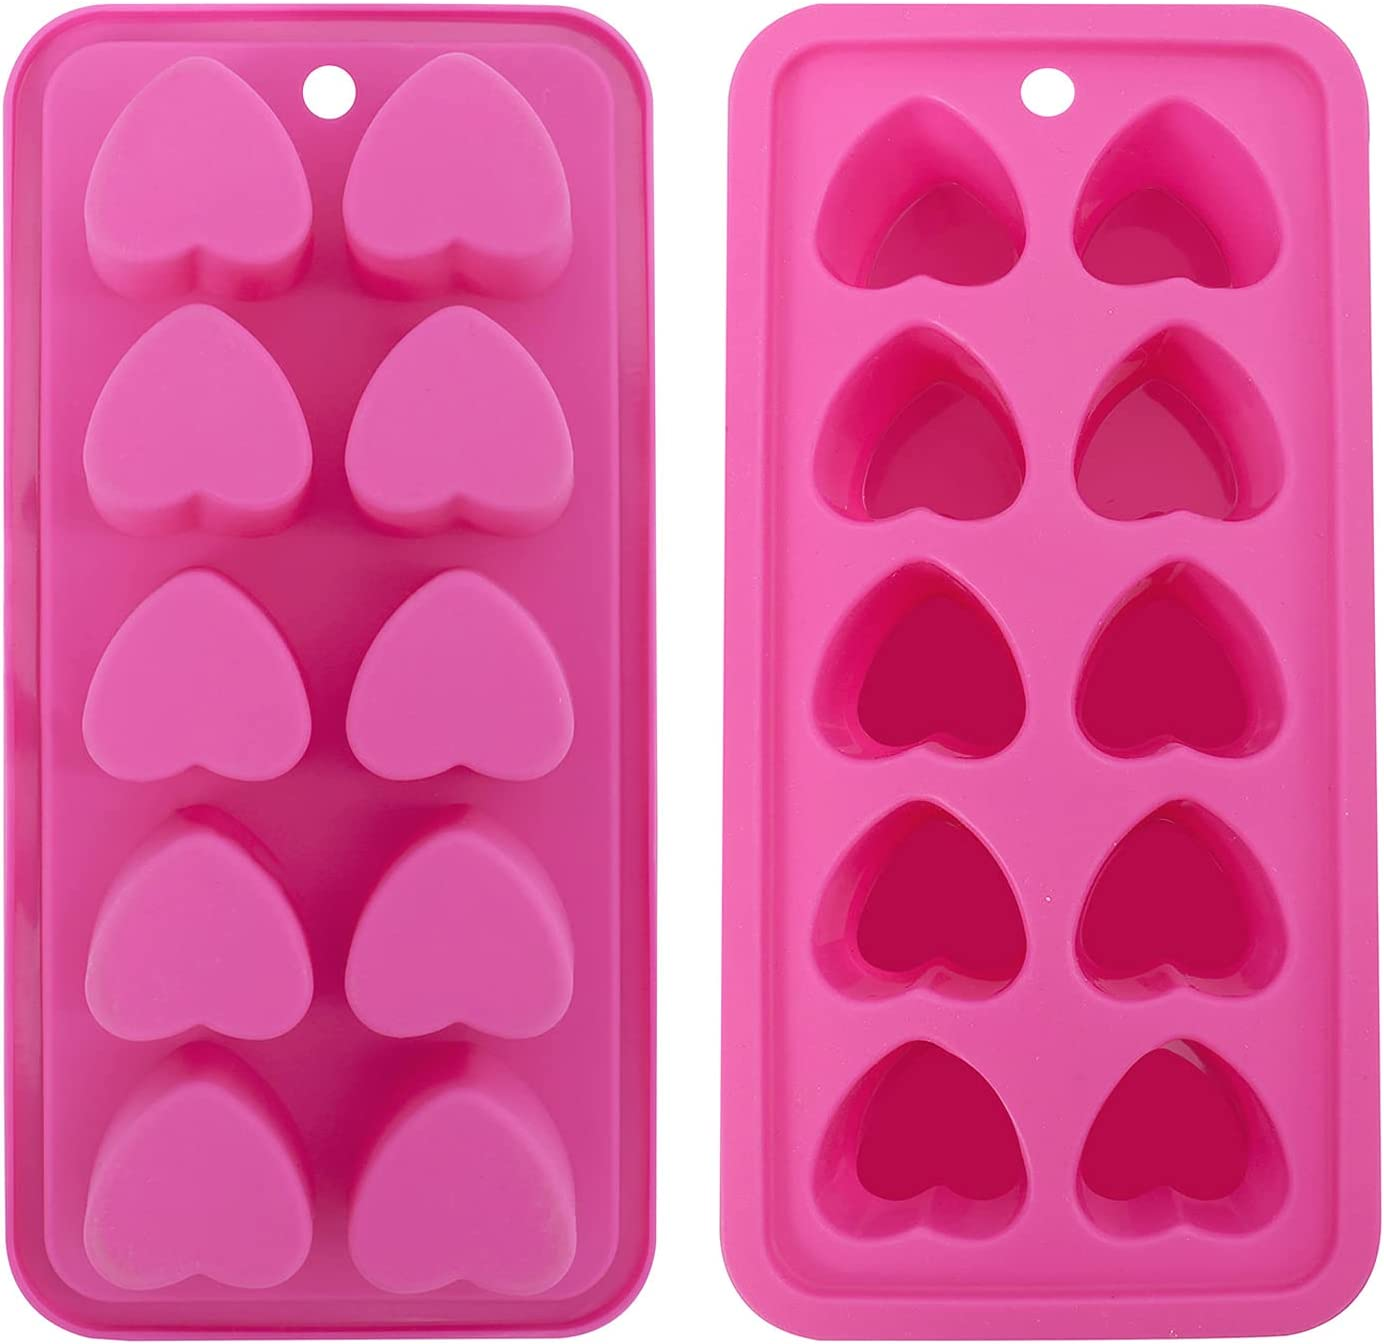 Heart shaped Ice Cube Trays,Fun Silicone Ice Cube Trays for Make  Heart shaped Ice Cube,Easy Release Ice Cube Mold for  Cocktails,Whiskey,Water ...